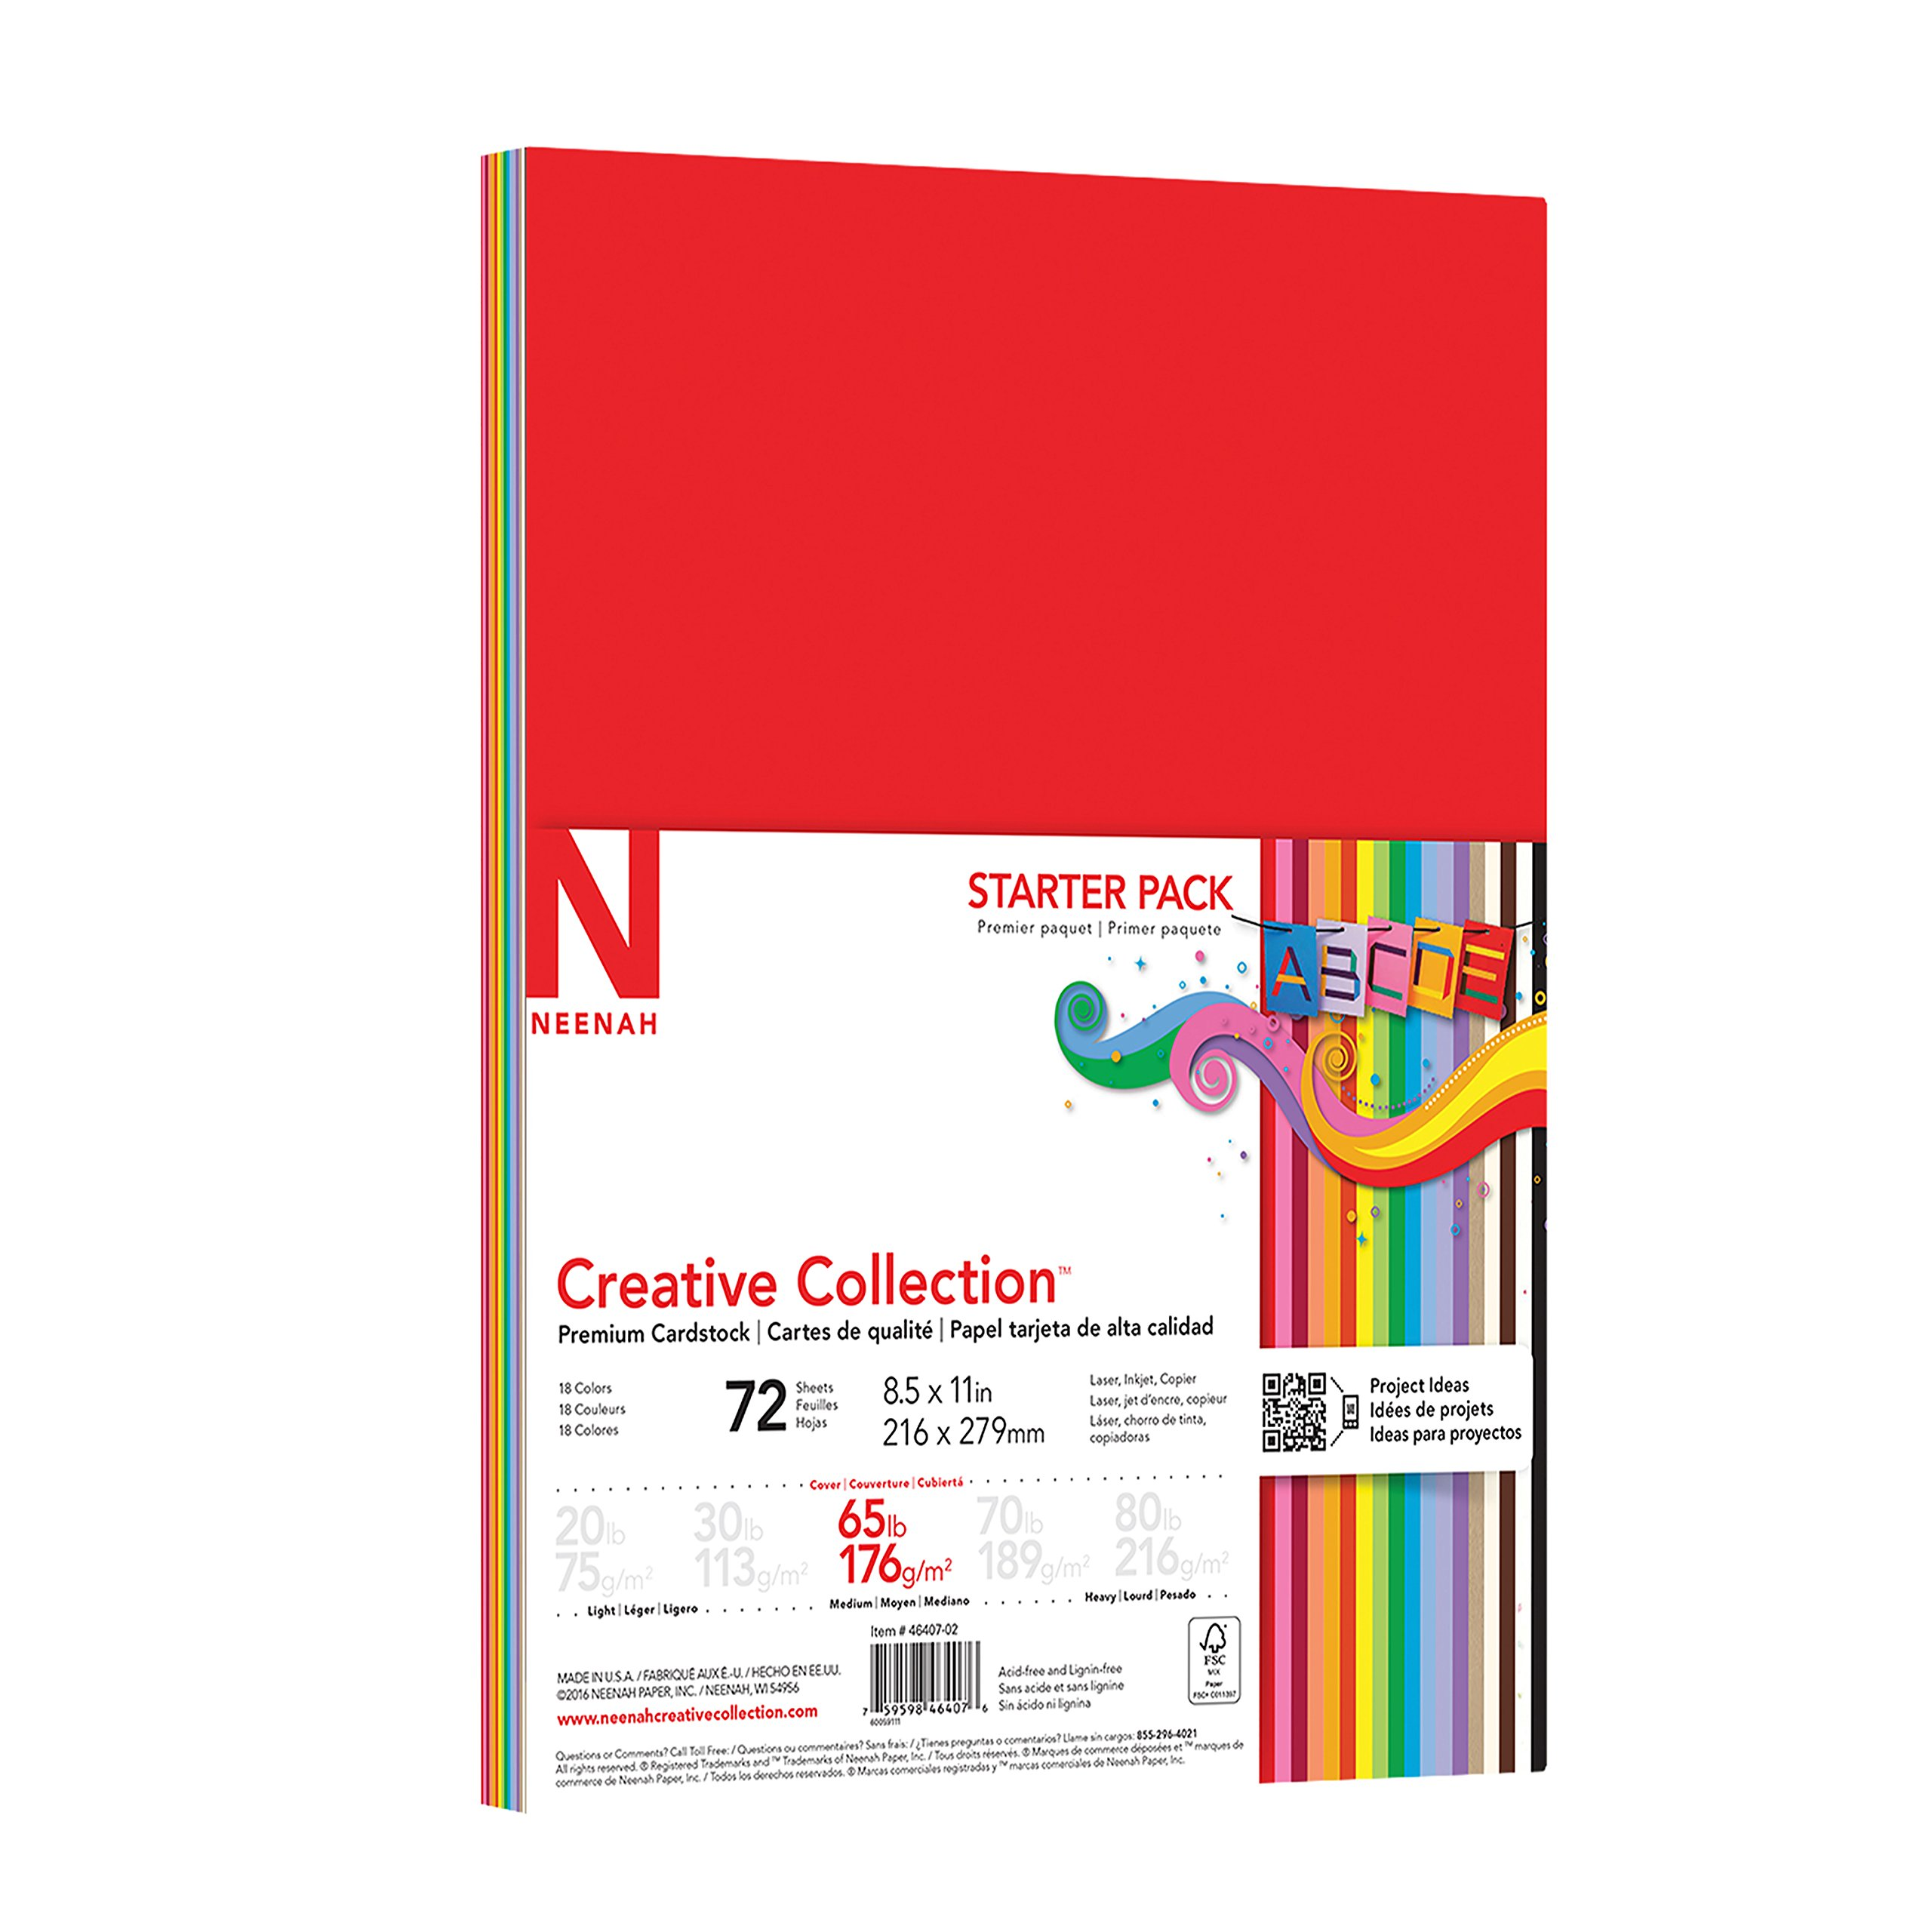 Neenah Creative Collection Classics Specialty Cardstock Starter Kit, 8.5 X 11 Inches, 72 Count (46407-01) by Neenah